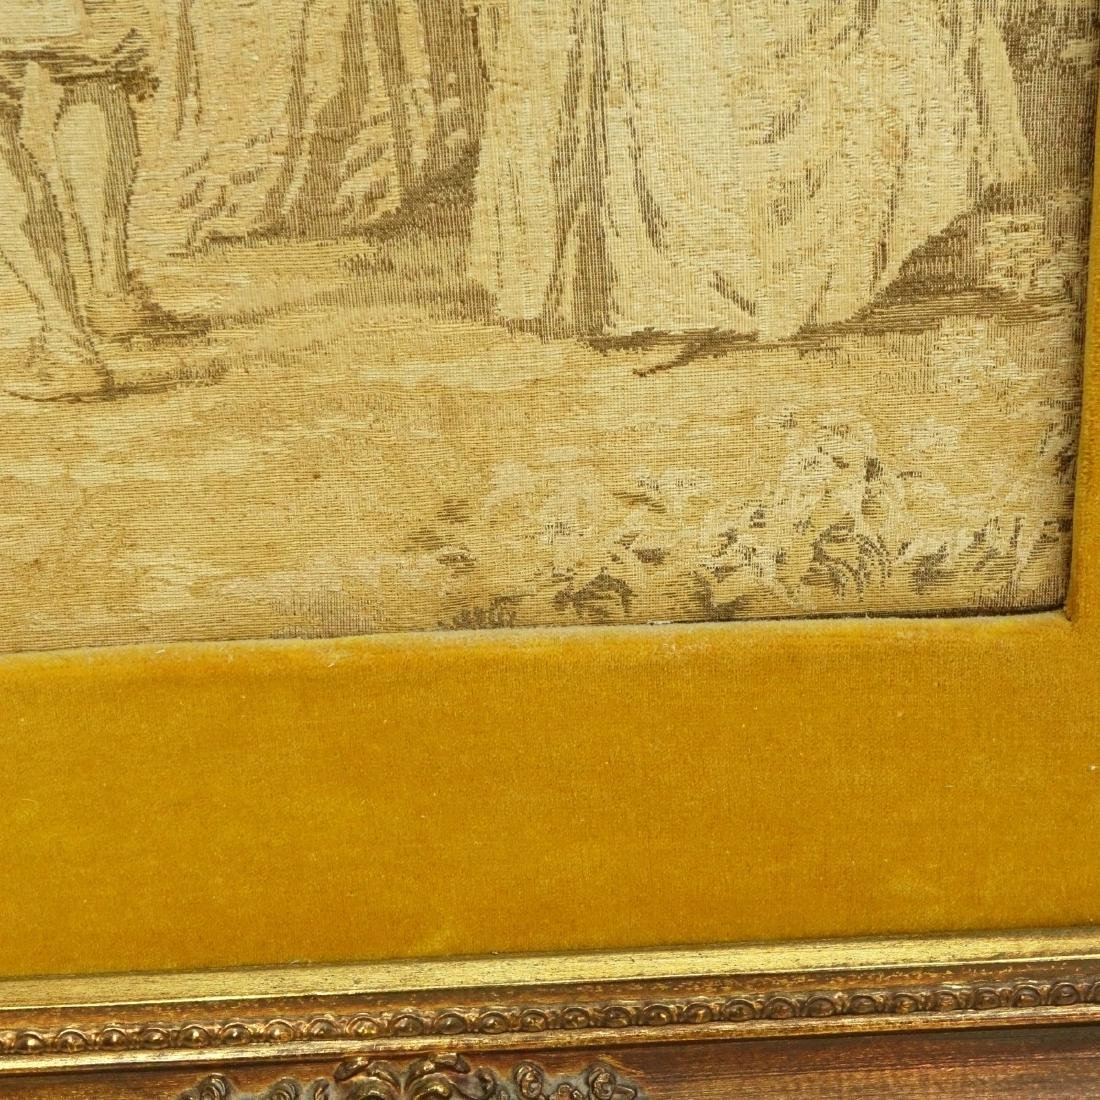 Framed Antique French Victorian Tapestry - 4